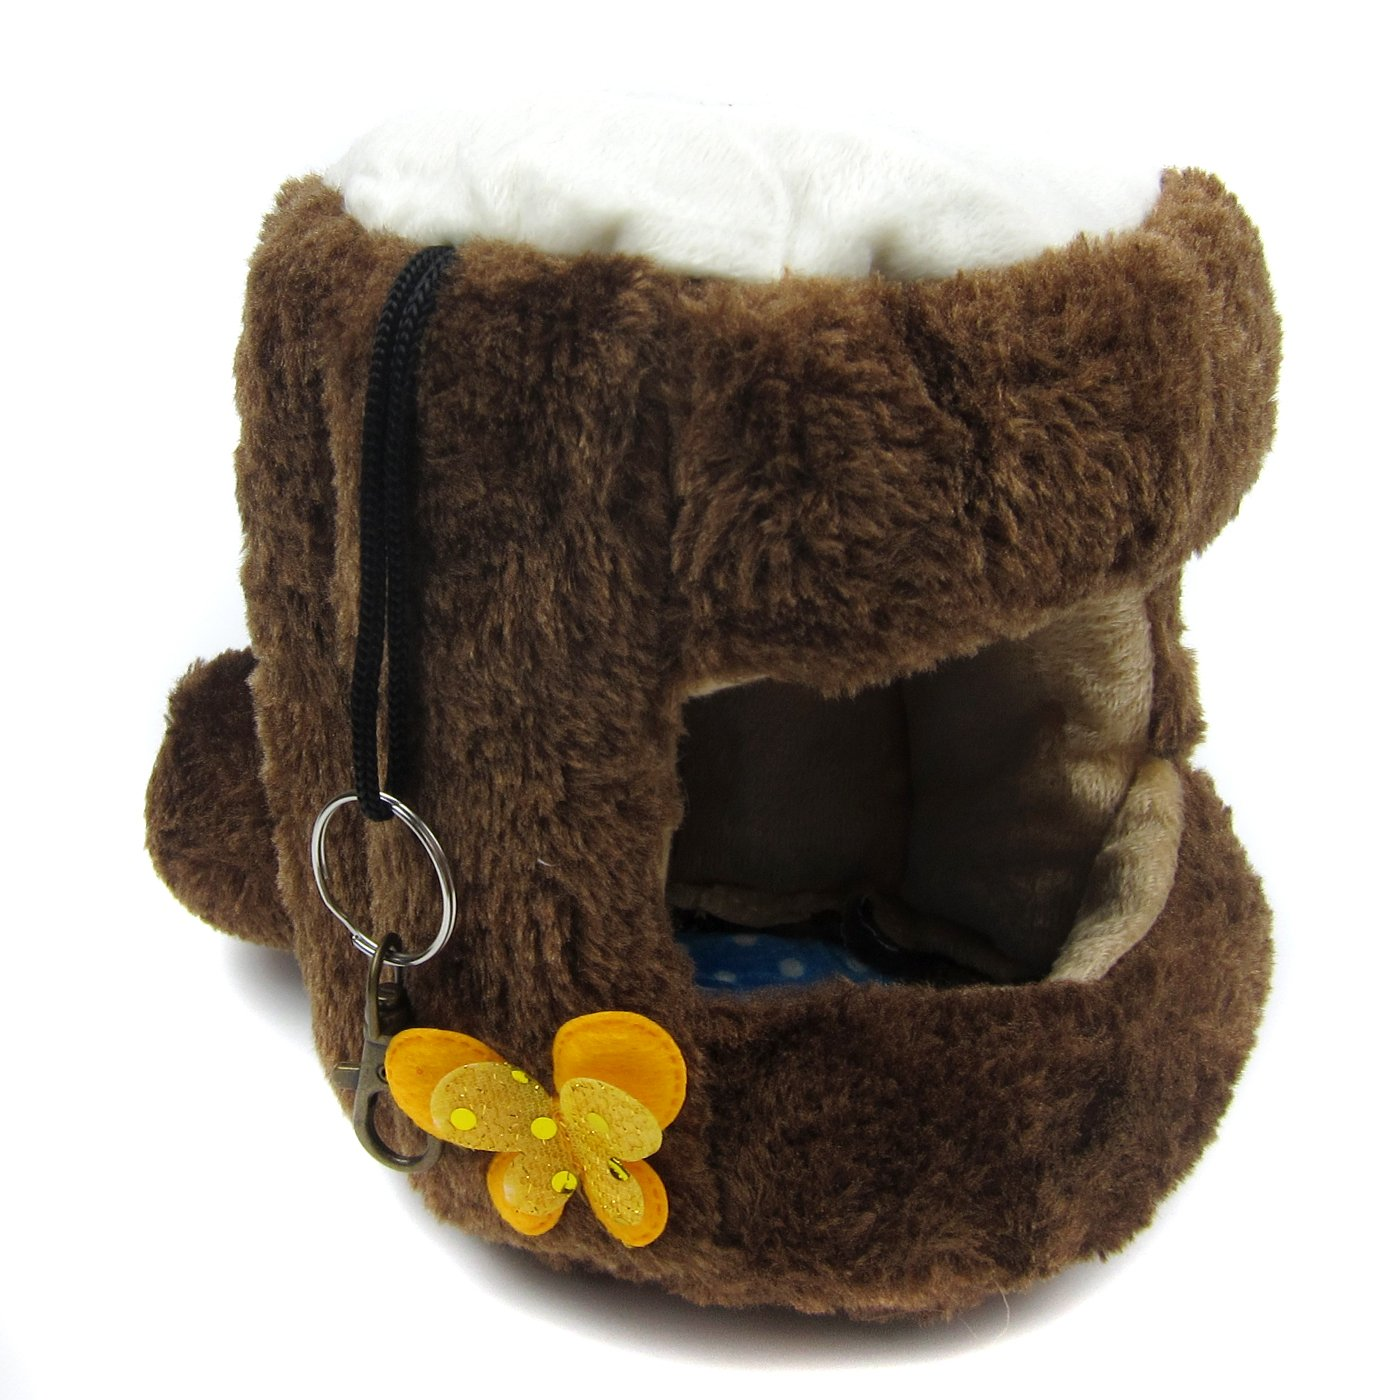 Alfie Pet by Petoga Couture - Lucian Hanging Bed for Small Animals like Dwarf Hamster and Mouse - Color: Brown, Size: Small